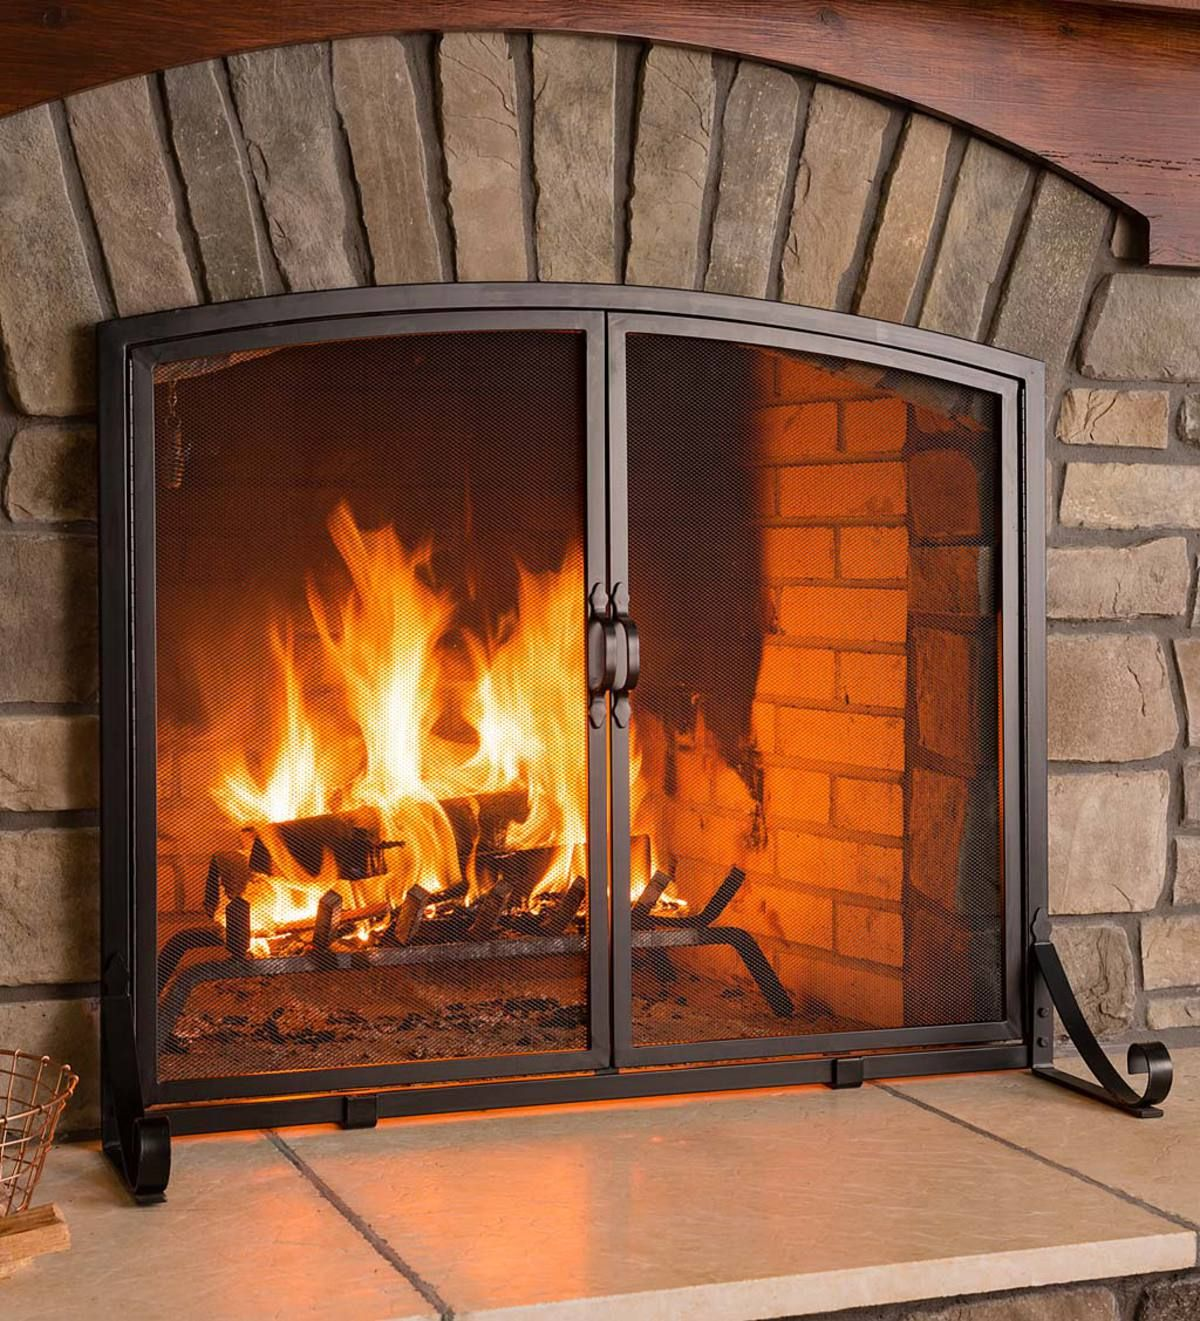 Handcrafted Of Solid Steel And Not Hollow Tubes This Classic Large Arched Top Flat Guard Firepl Fireplace Screens With Doors Fireplace Doors Fireplace Screens